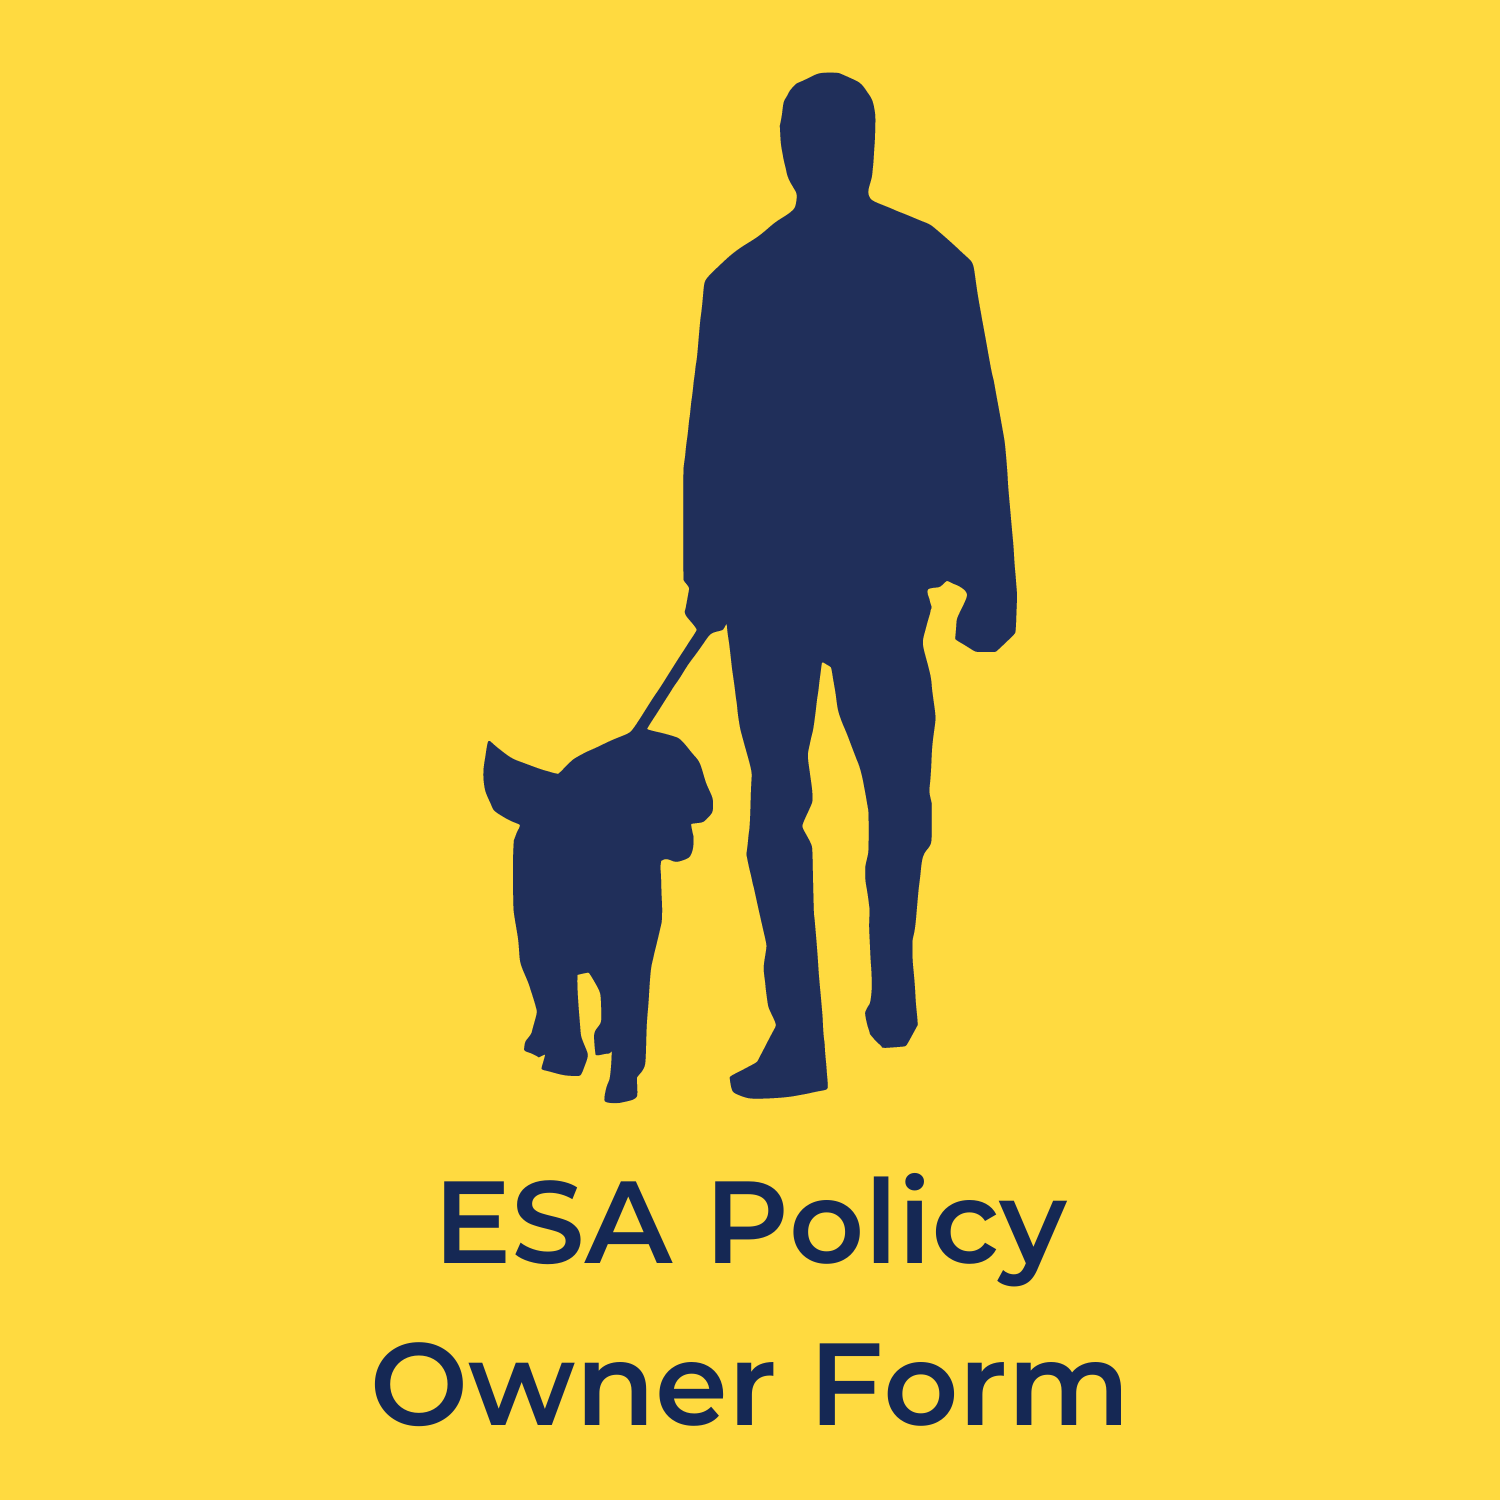 """yellow background. in the center is a silhouette of a man walking a dog. underneath reads """"ESA policy owner form"""""""